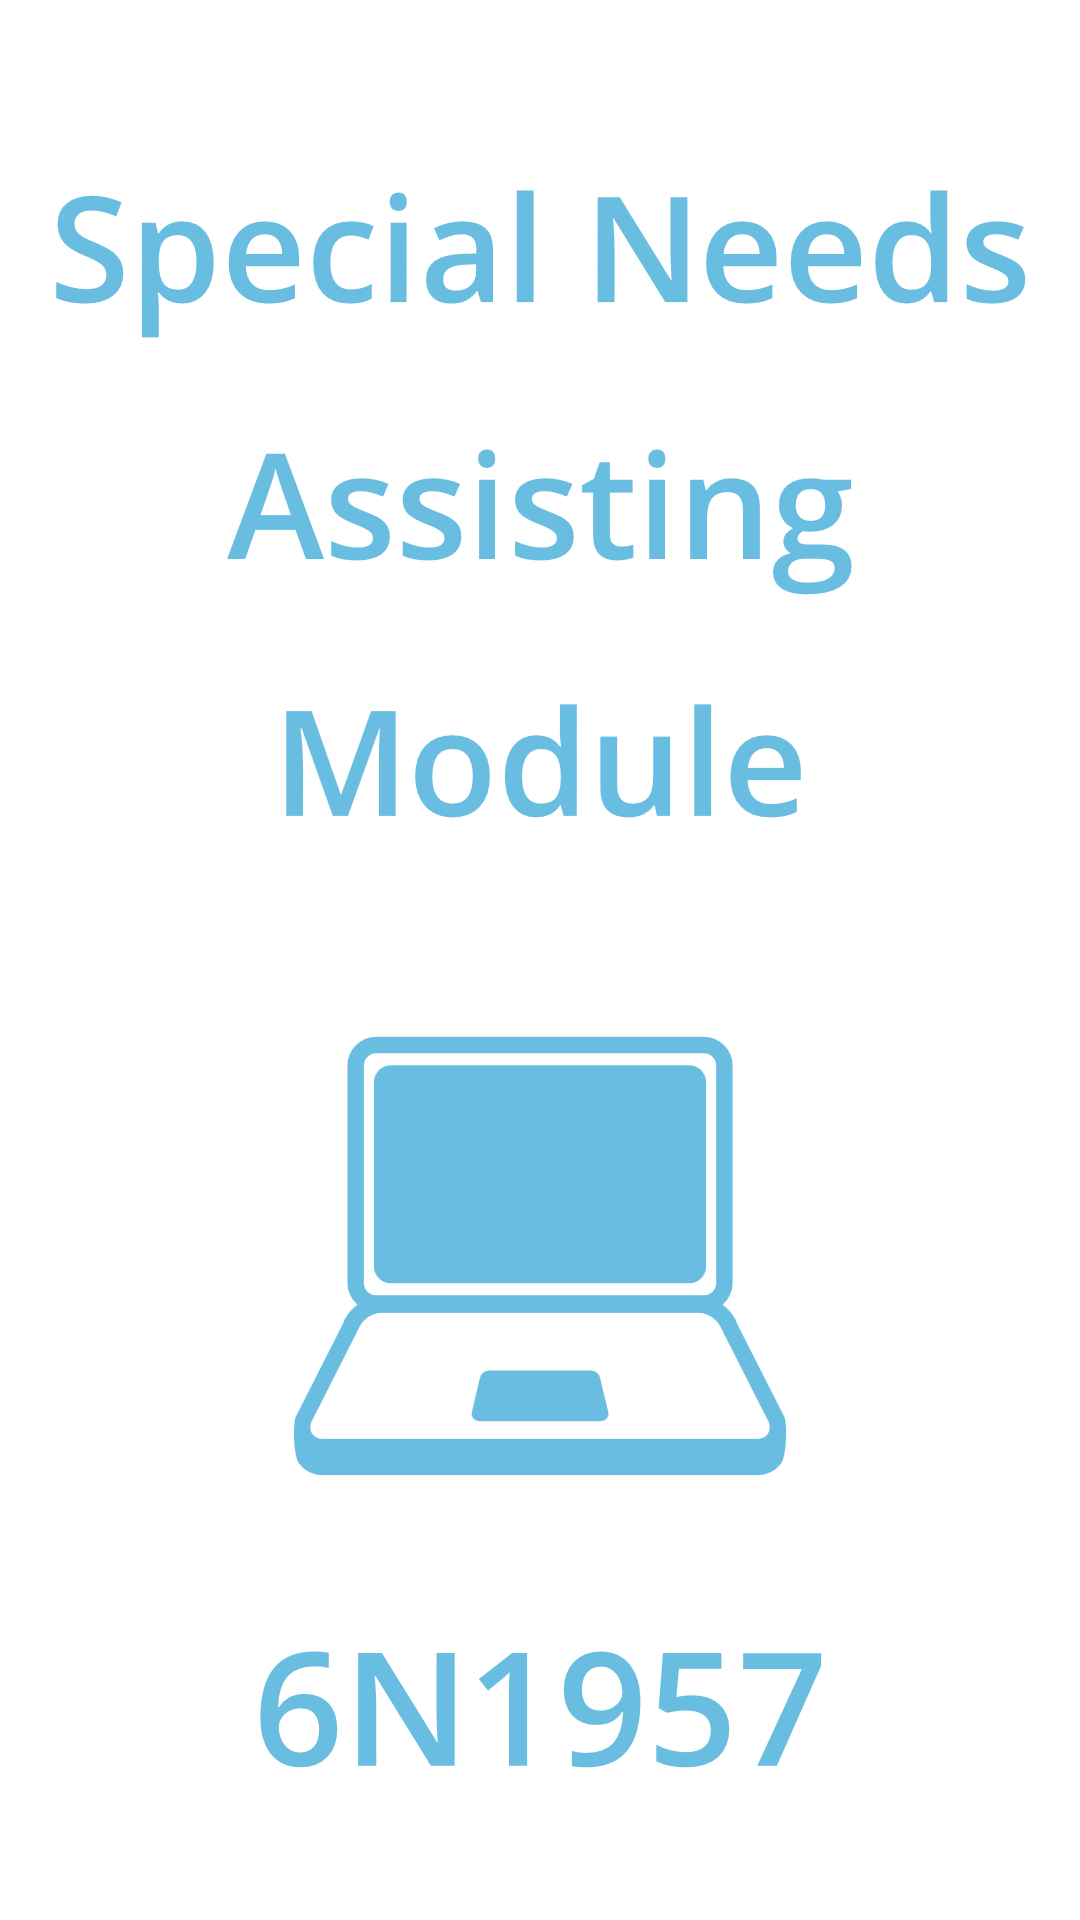 special needs assisting module